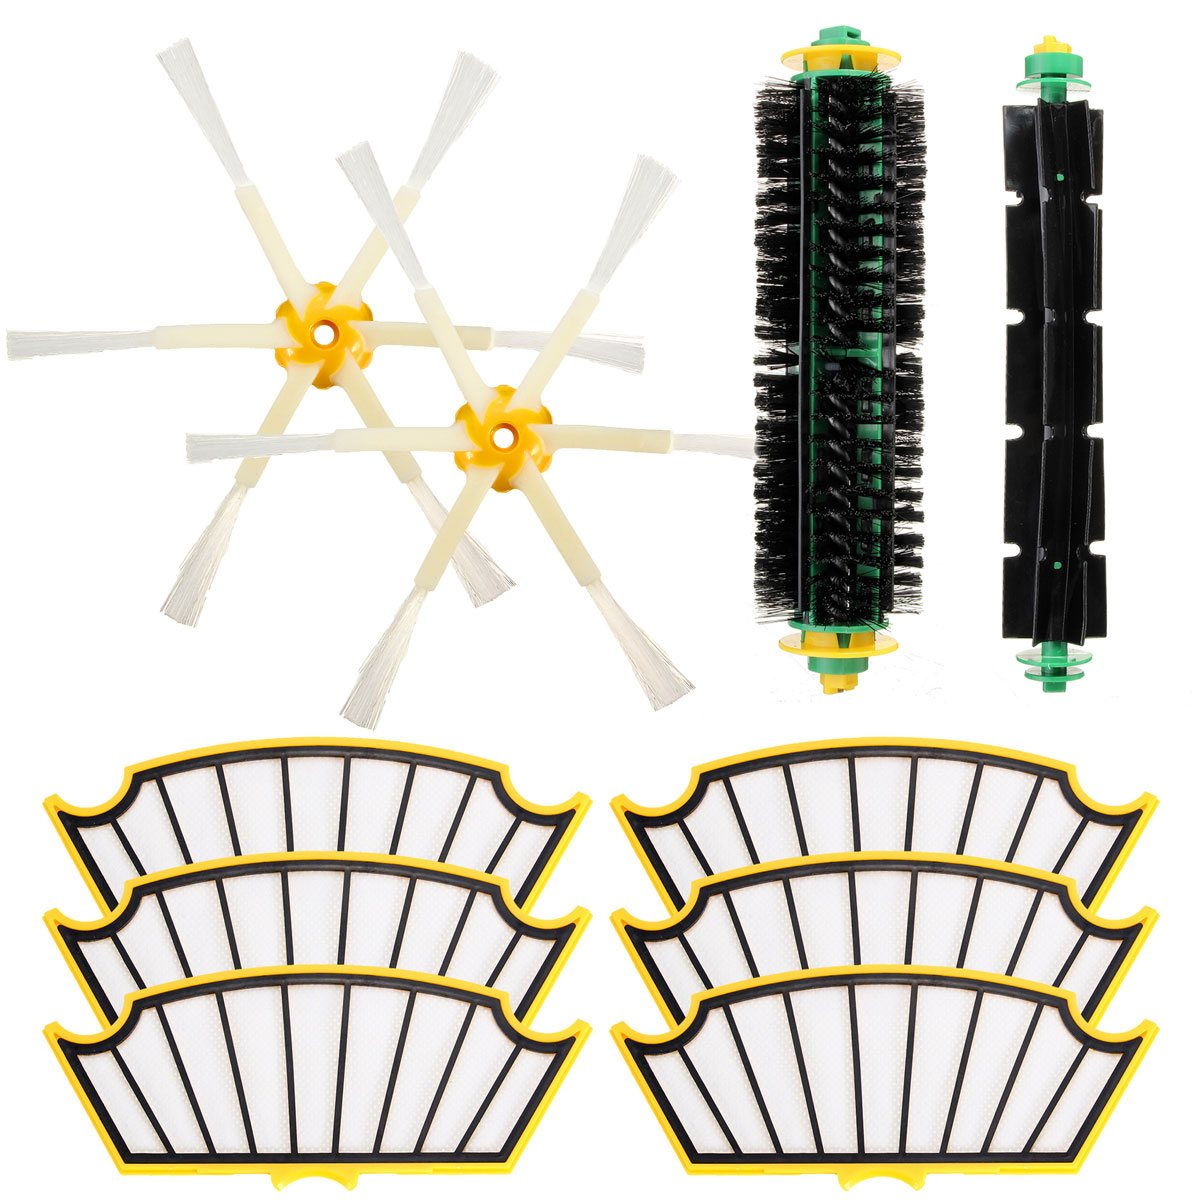 2018 Replacement Filter Brush Round Cleaning Tool Accessories Kit For IRobot  Roomba 500 Series 510 530 540 550 560 580 570